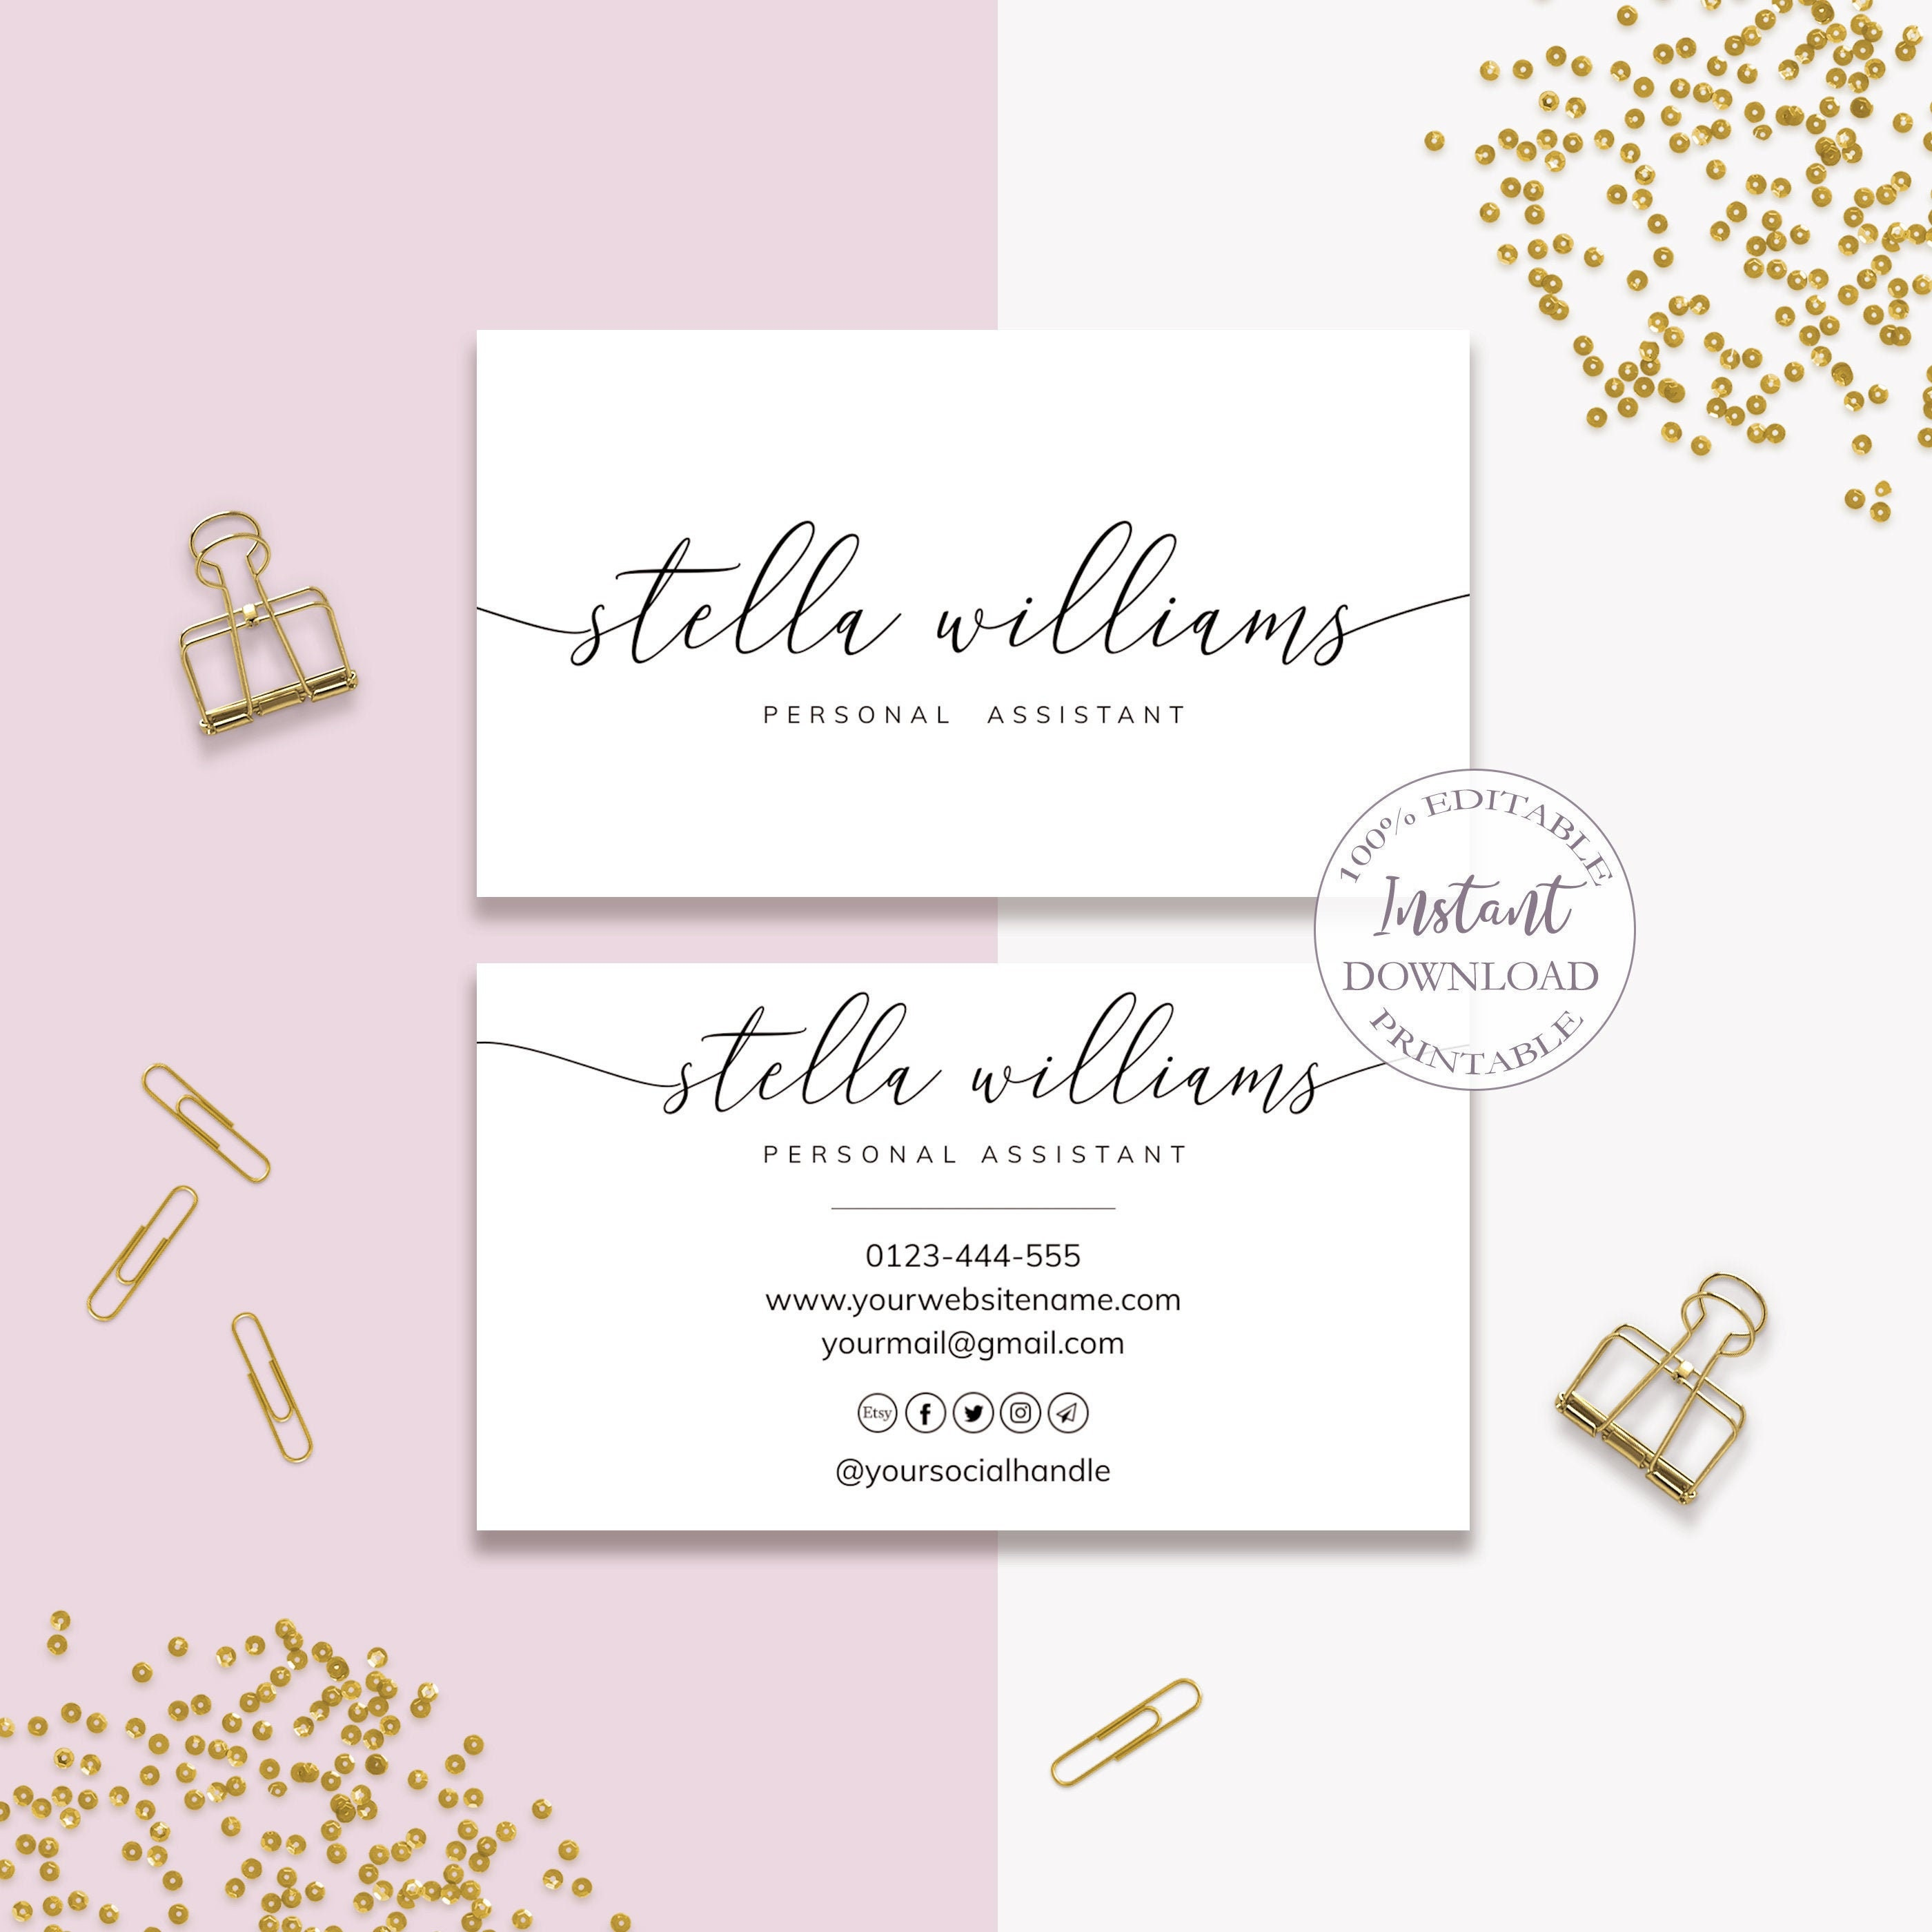 Business Card Template, Editable DIY Business Cards, Custom Business Cards,  Printable Hair Business Cards, Social Icons Included. DTP 20